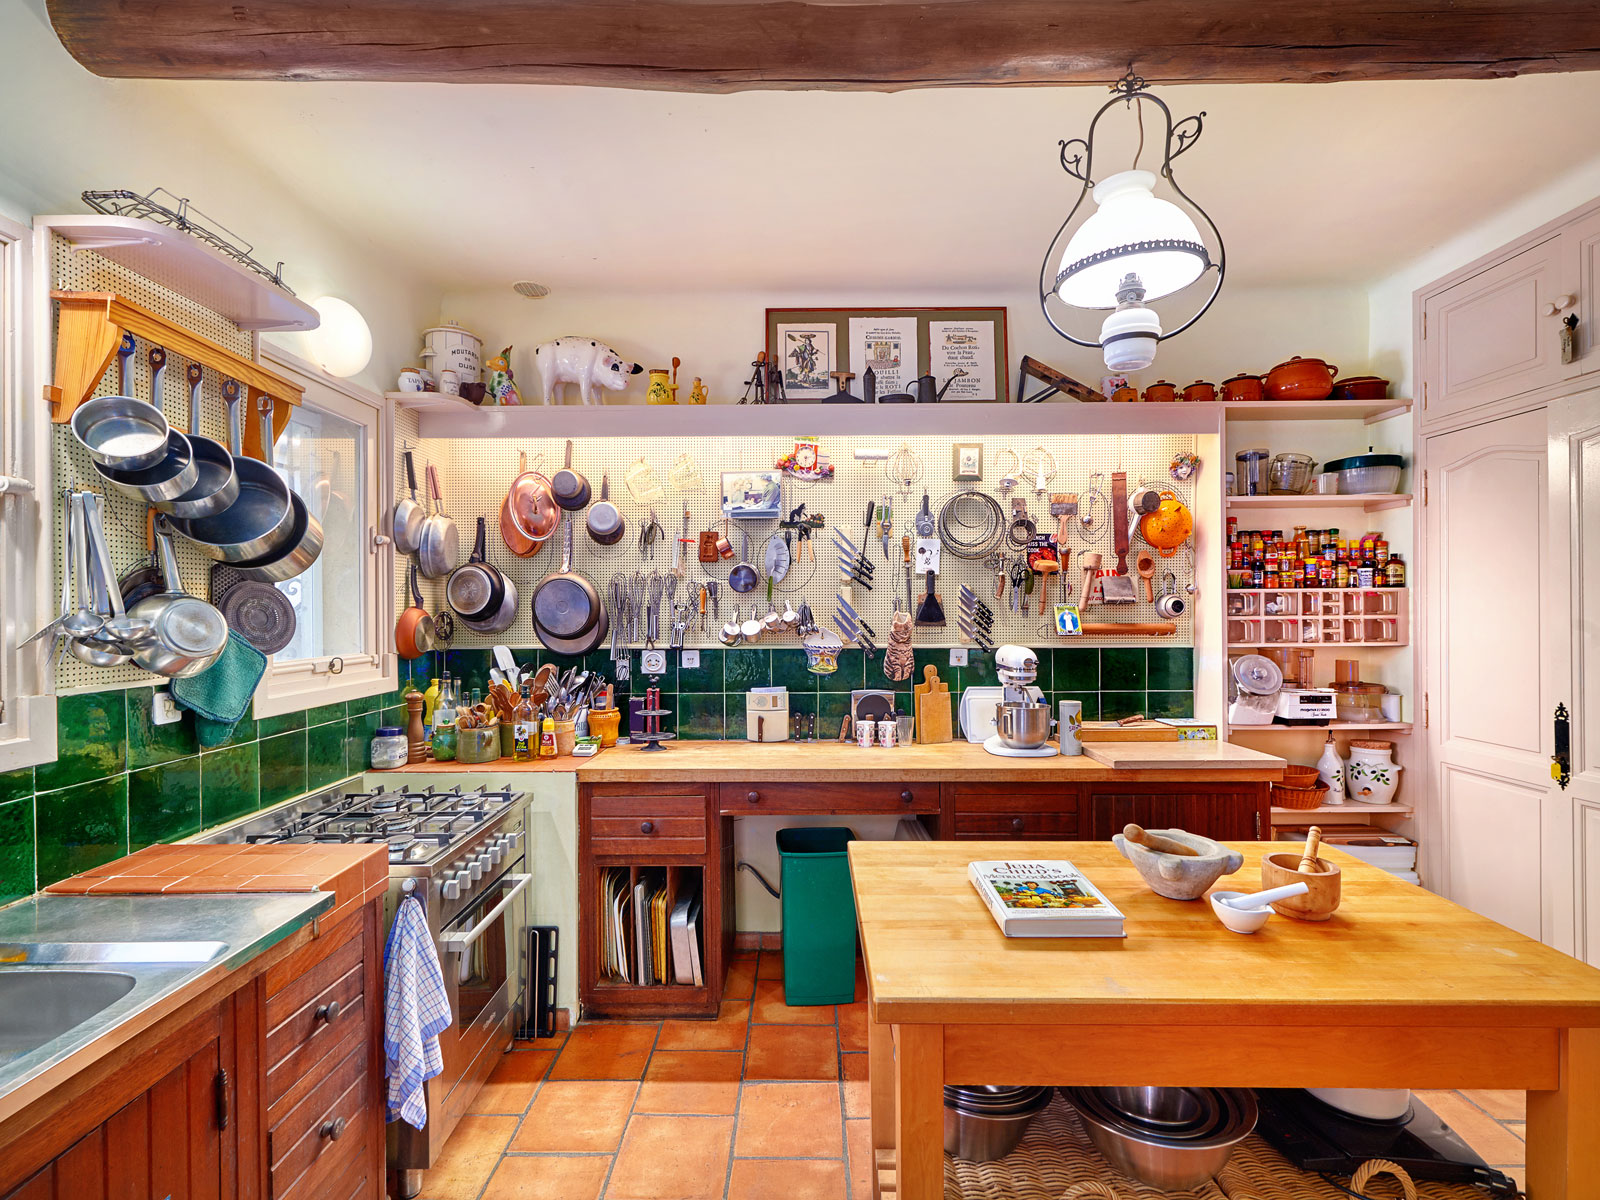 Inside the cooking school at julia child 39 s summer home for Julia child cooking school